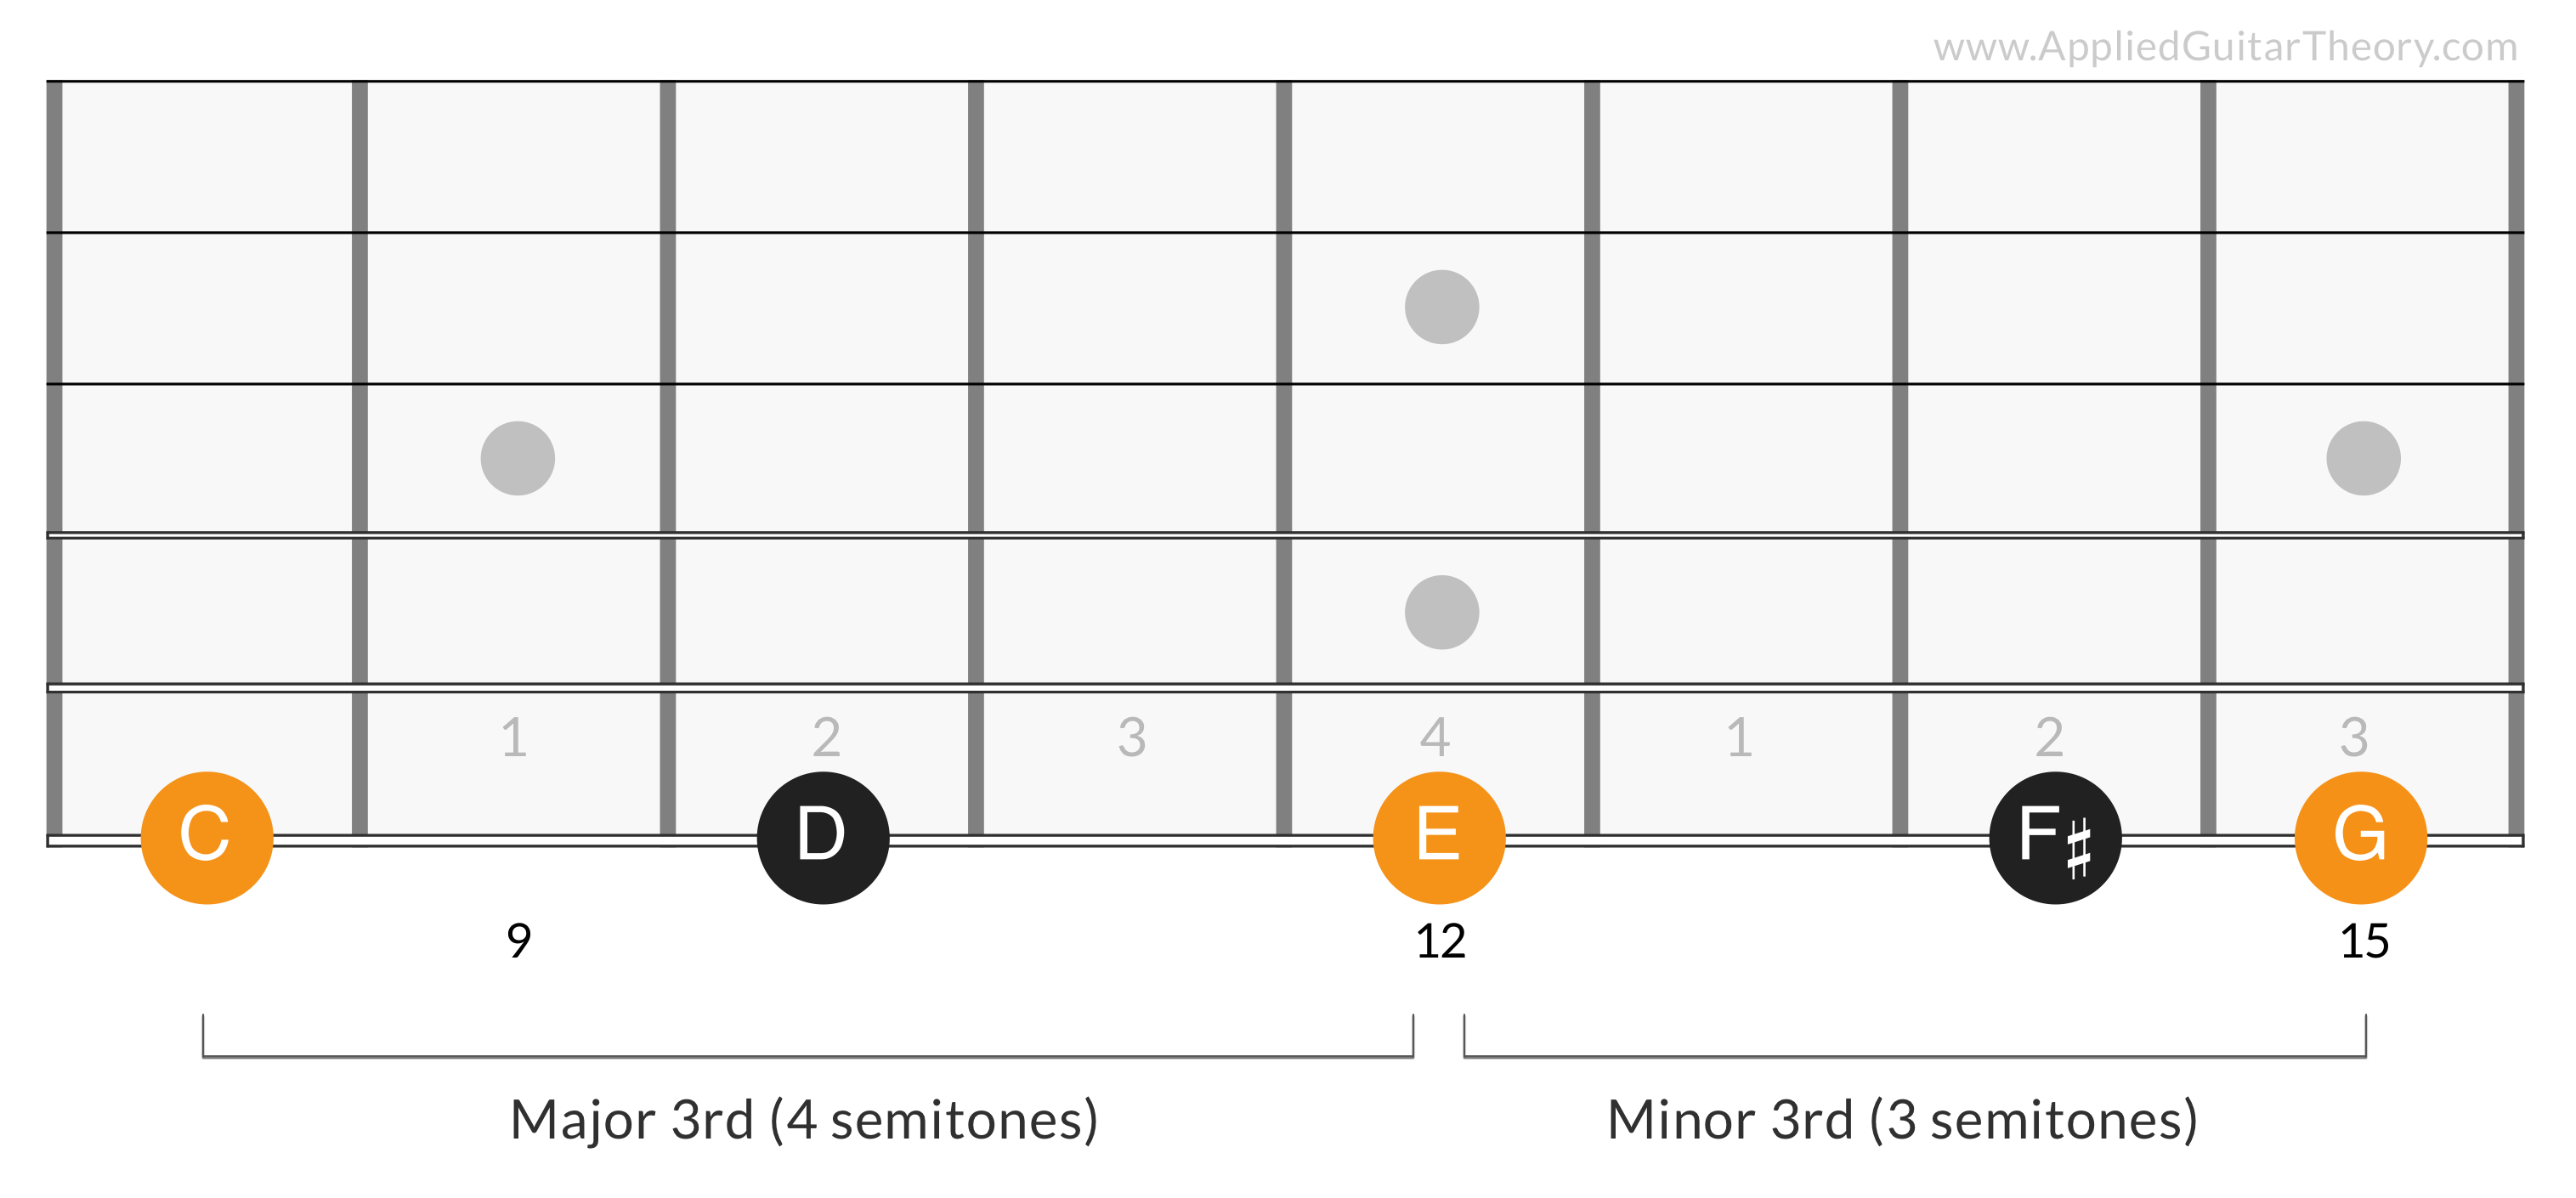 G Major Triad 4th Degree - C E G